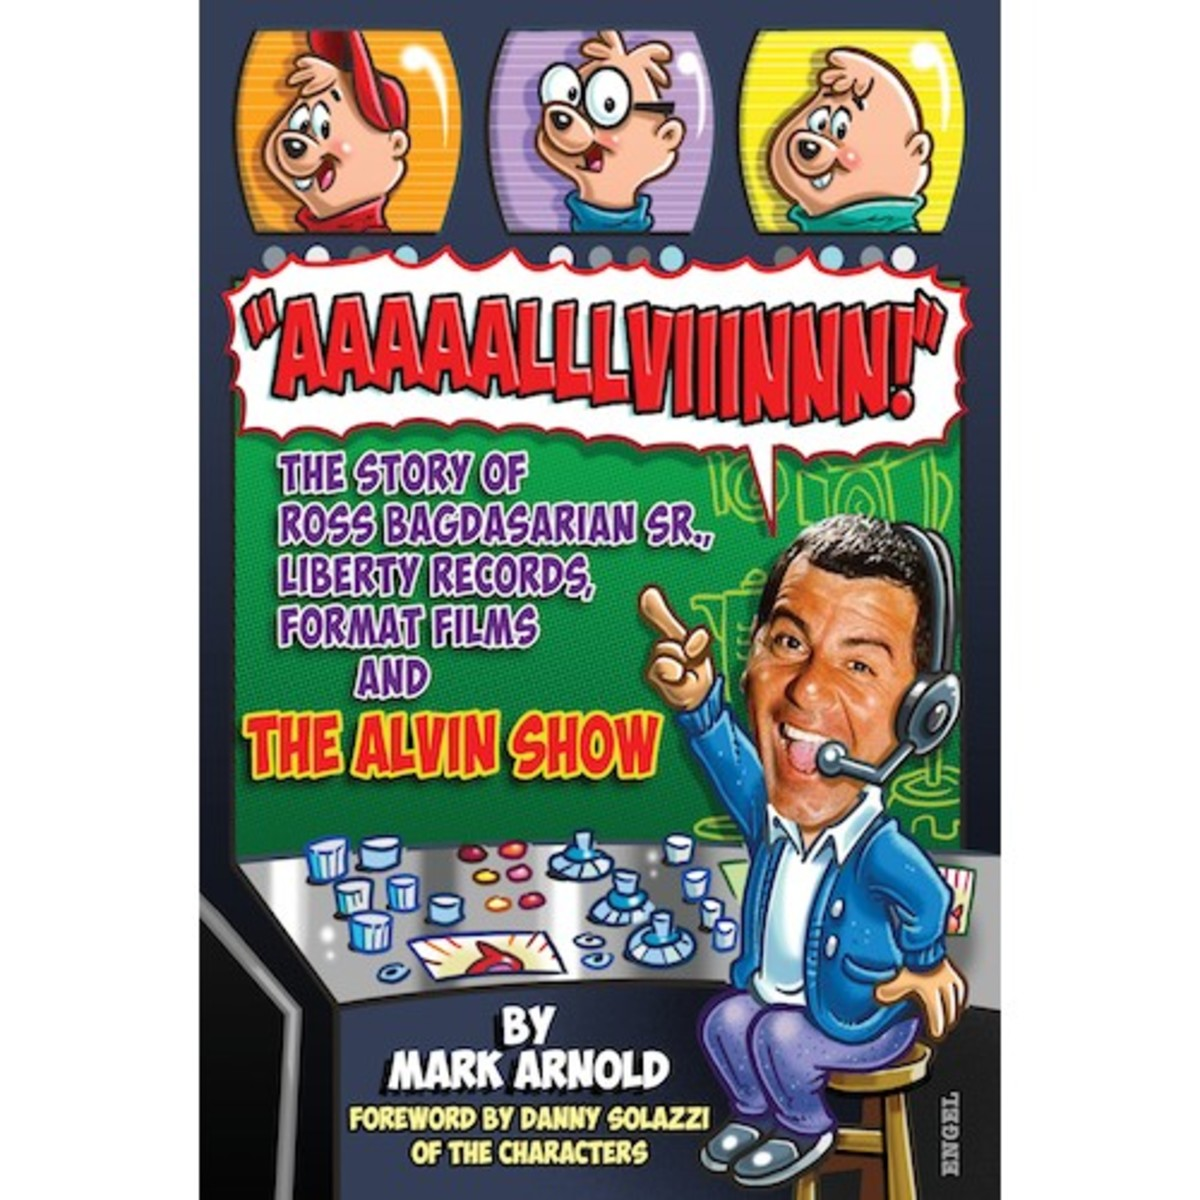 """Aaaaalllviiinnn!"": The Story of Ross Bagdasarian Sr., Liberty Records, Format Films and The Alvin Show-Book Review"